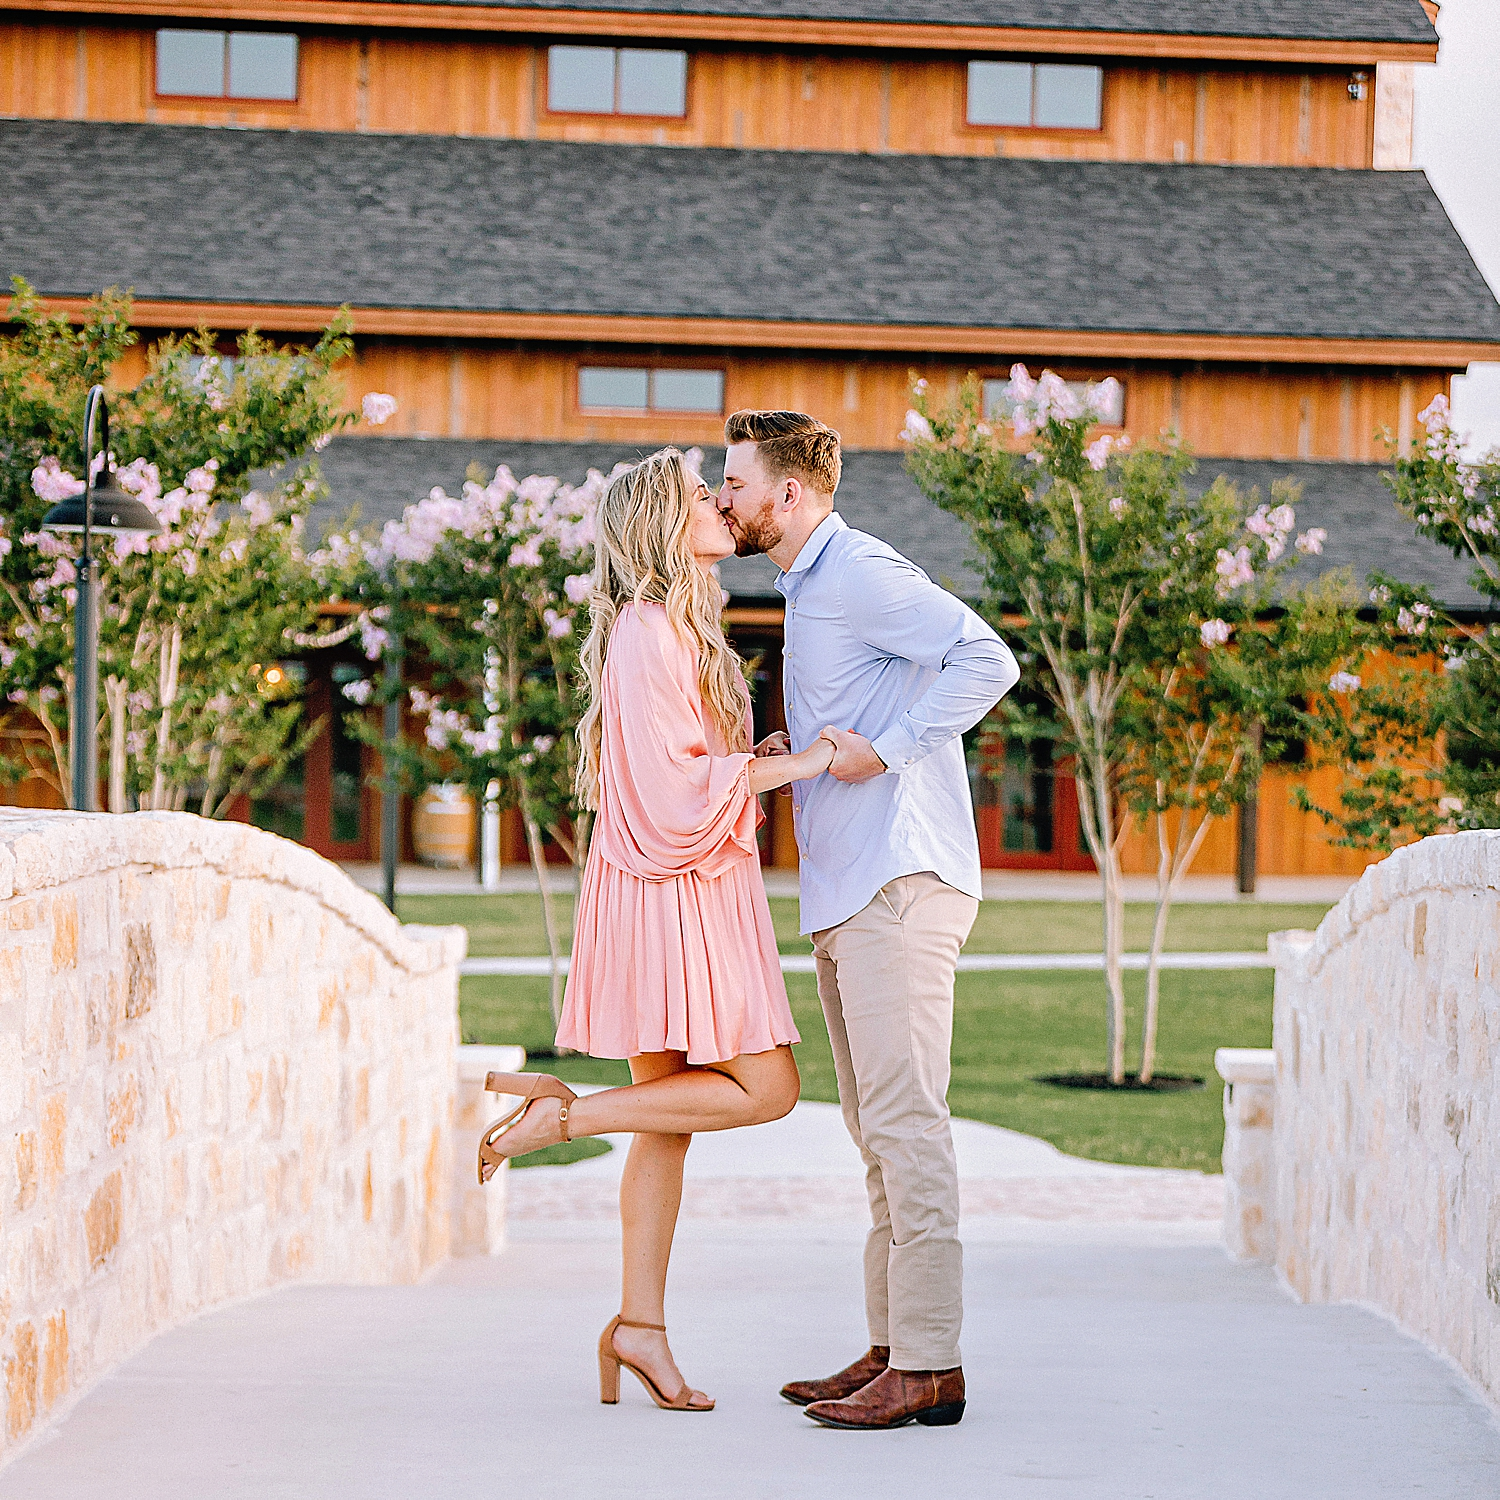 Carly-Barton-Photography-Engagement-Photos-College-Station-Texas-The-Weinberg-at-Wixon-Valley_0015.jpg